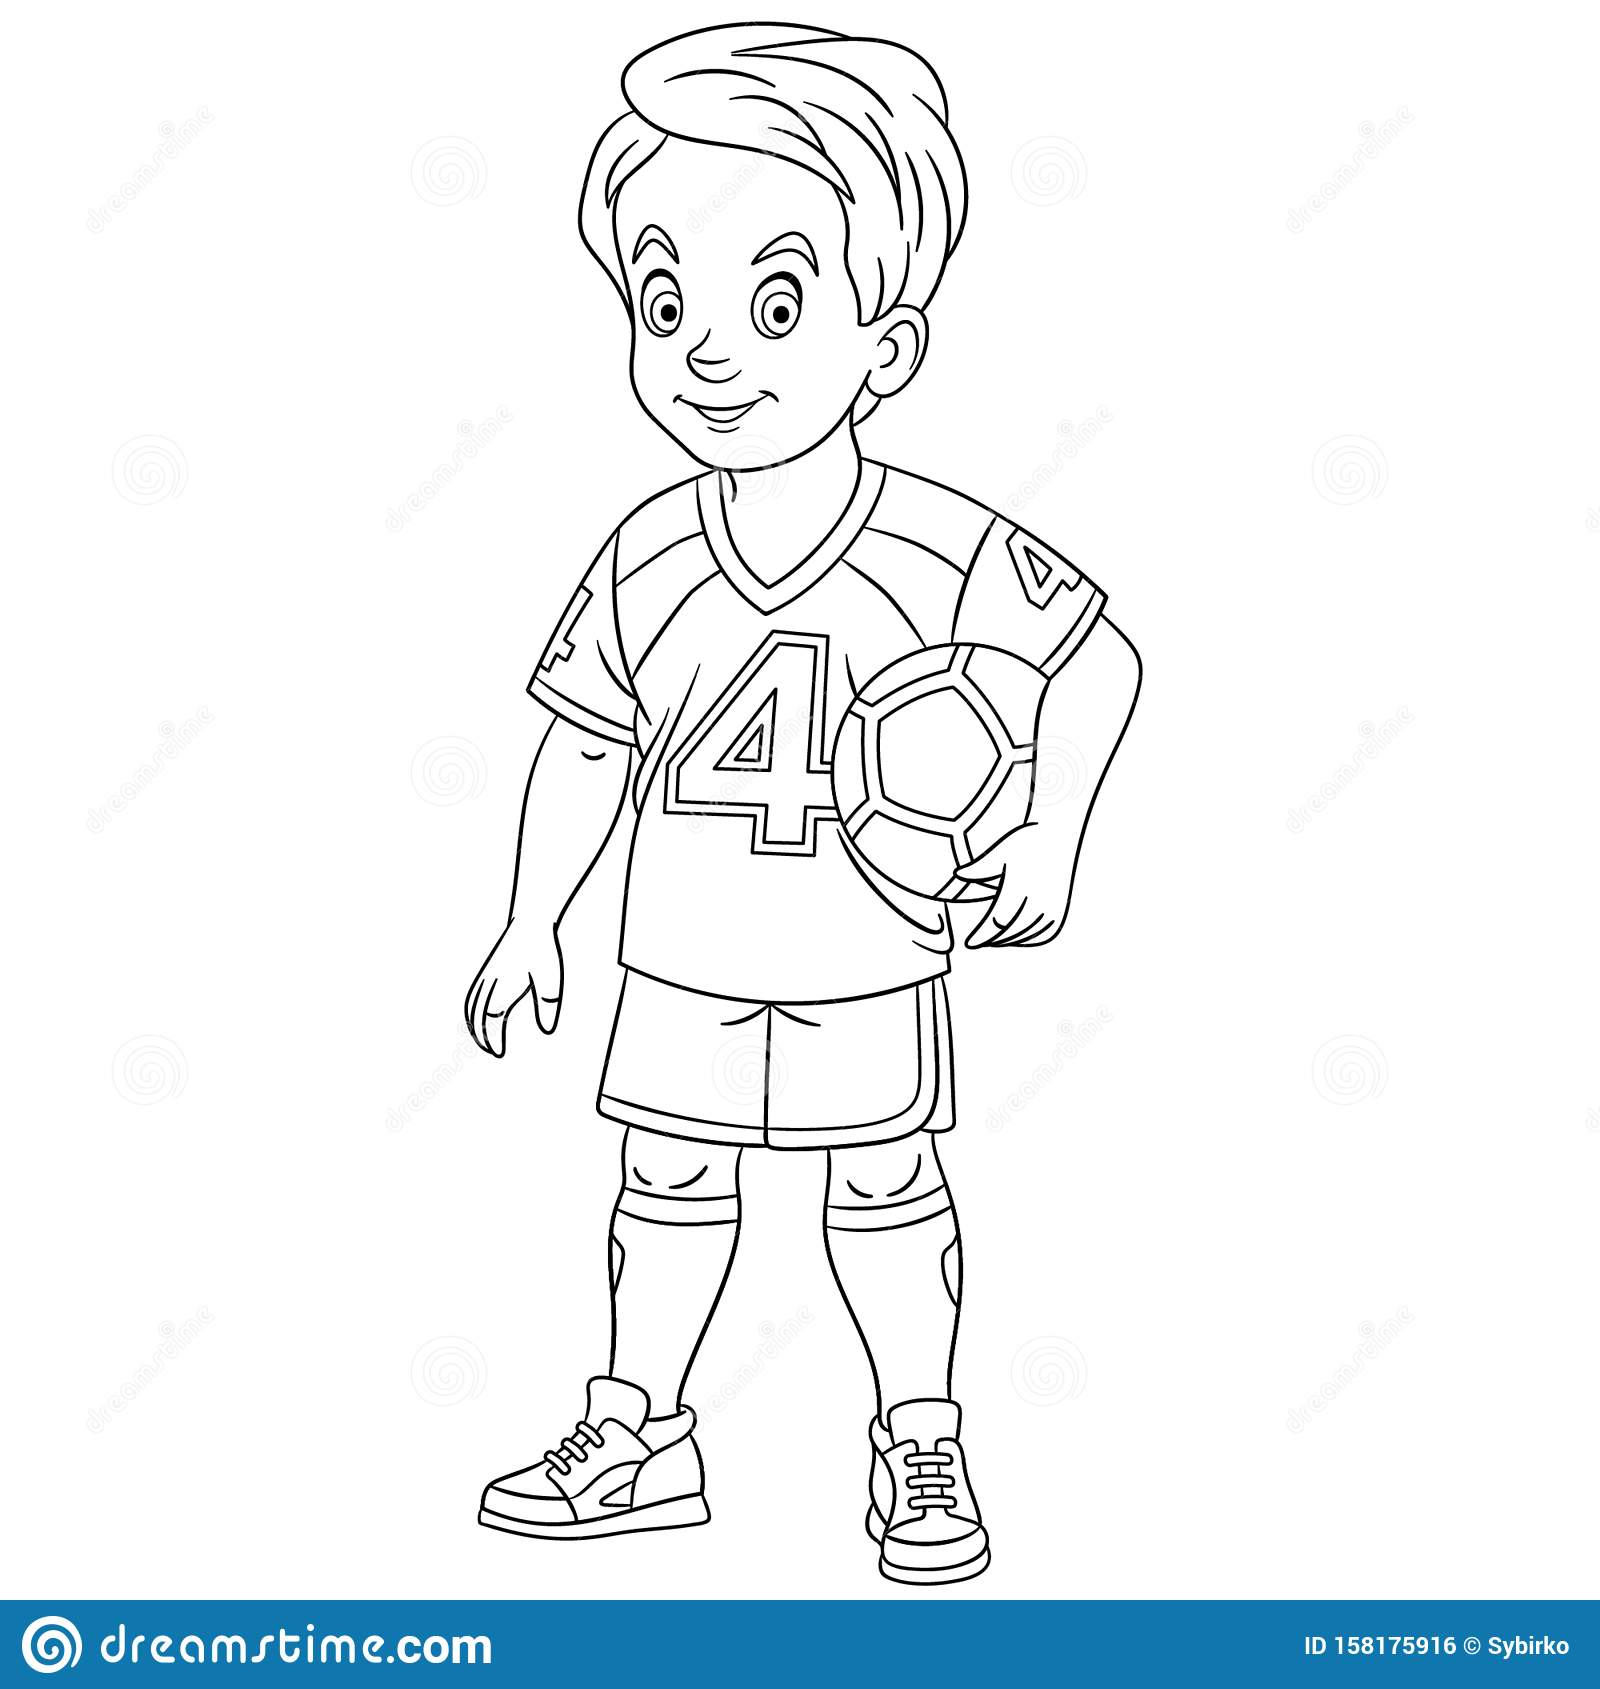 Coloring Page With Footballer Football Player Stock Vector Illustration Of Clipart Coloring 158175916